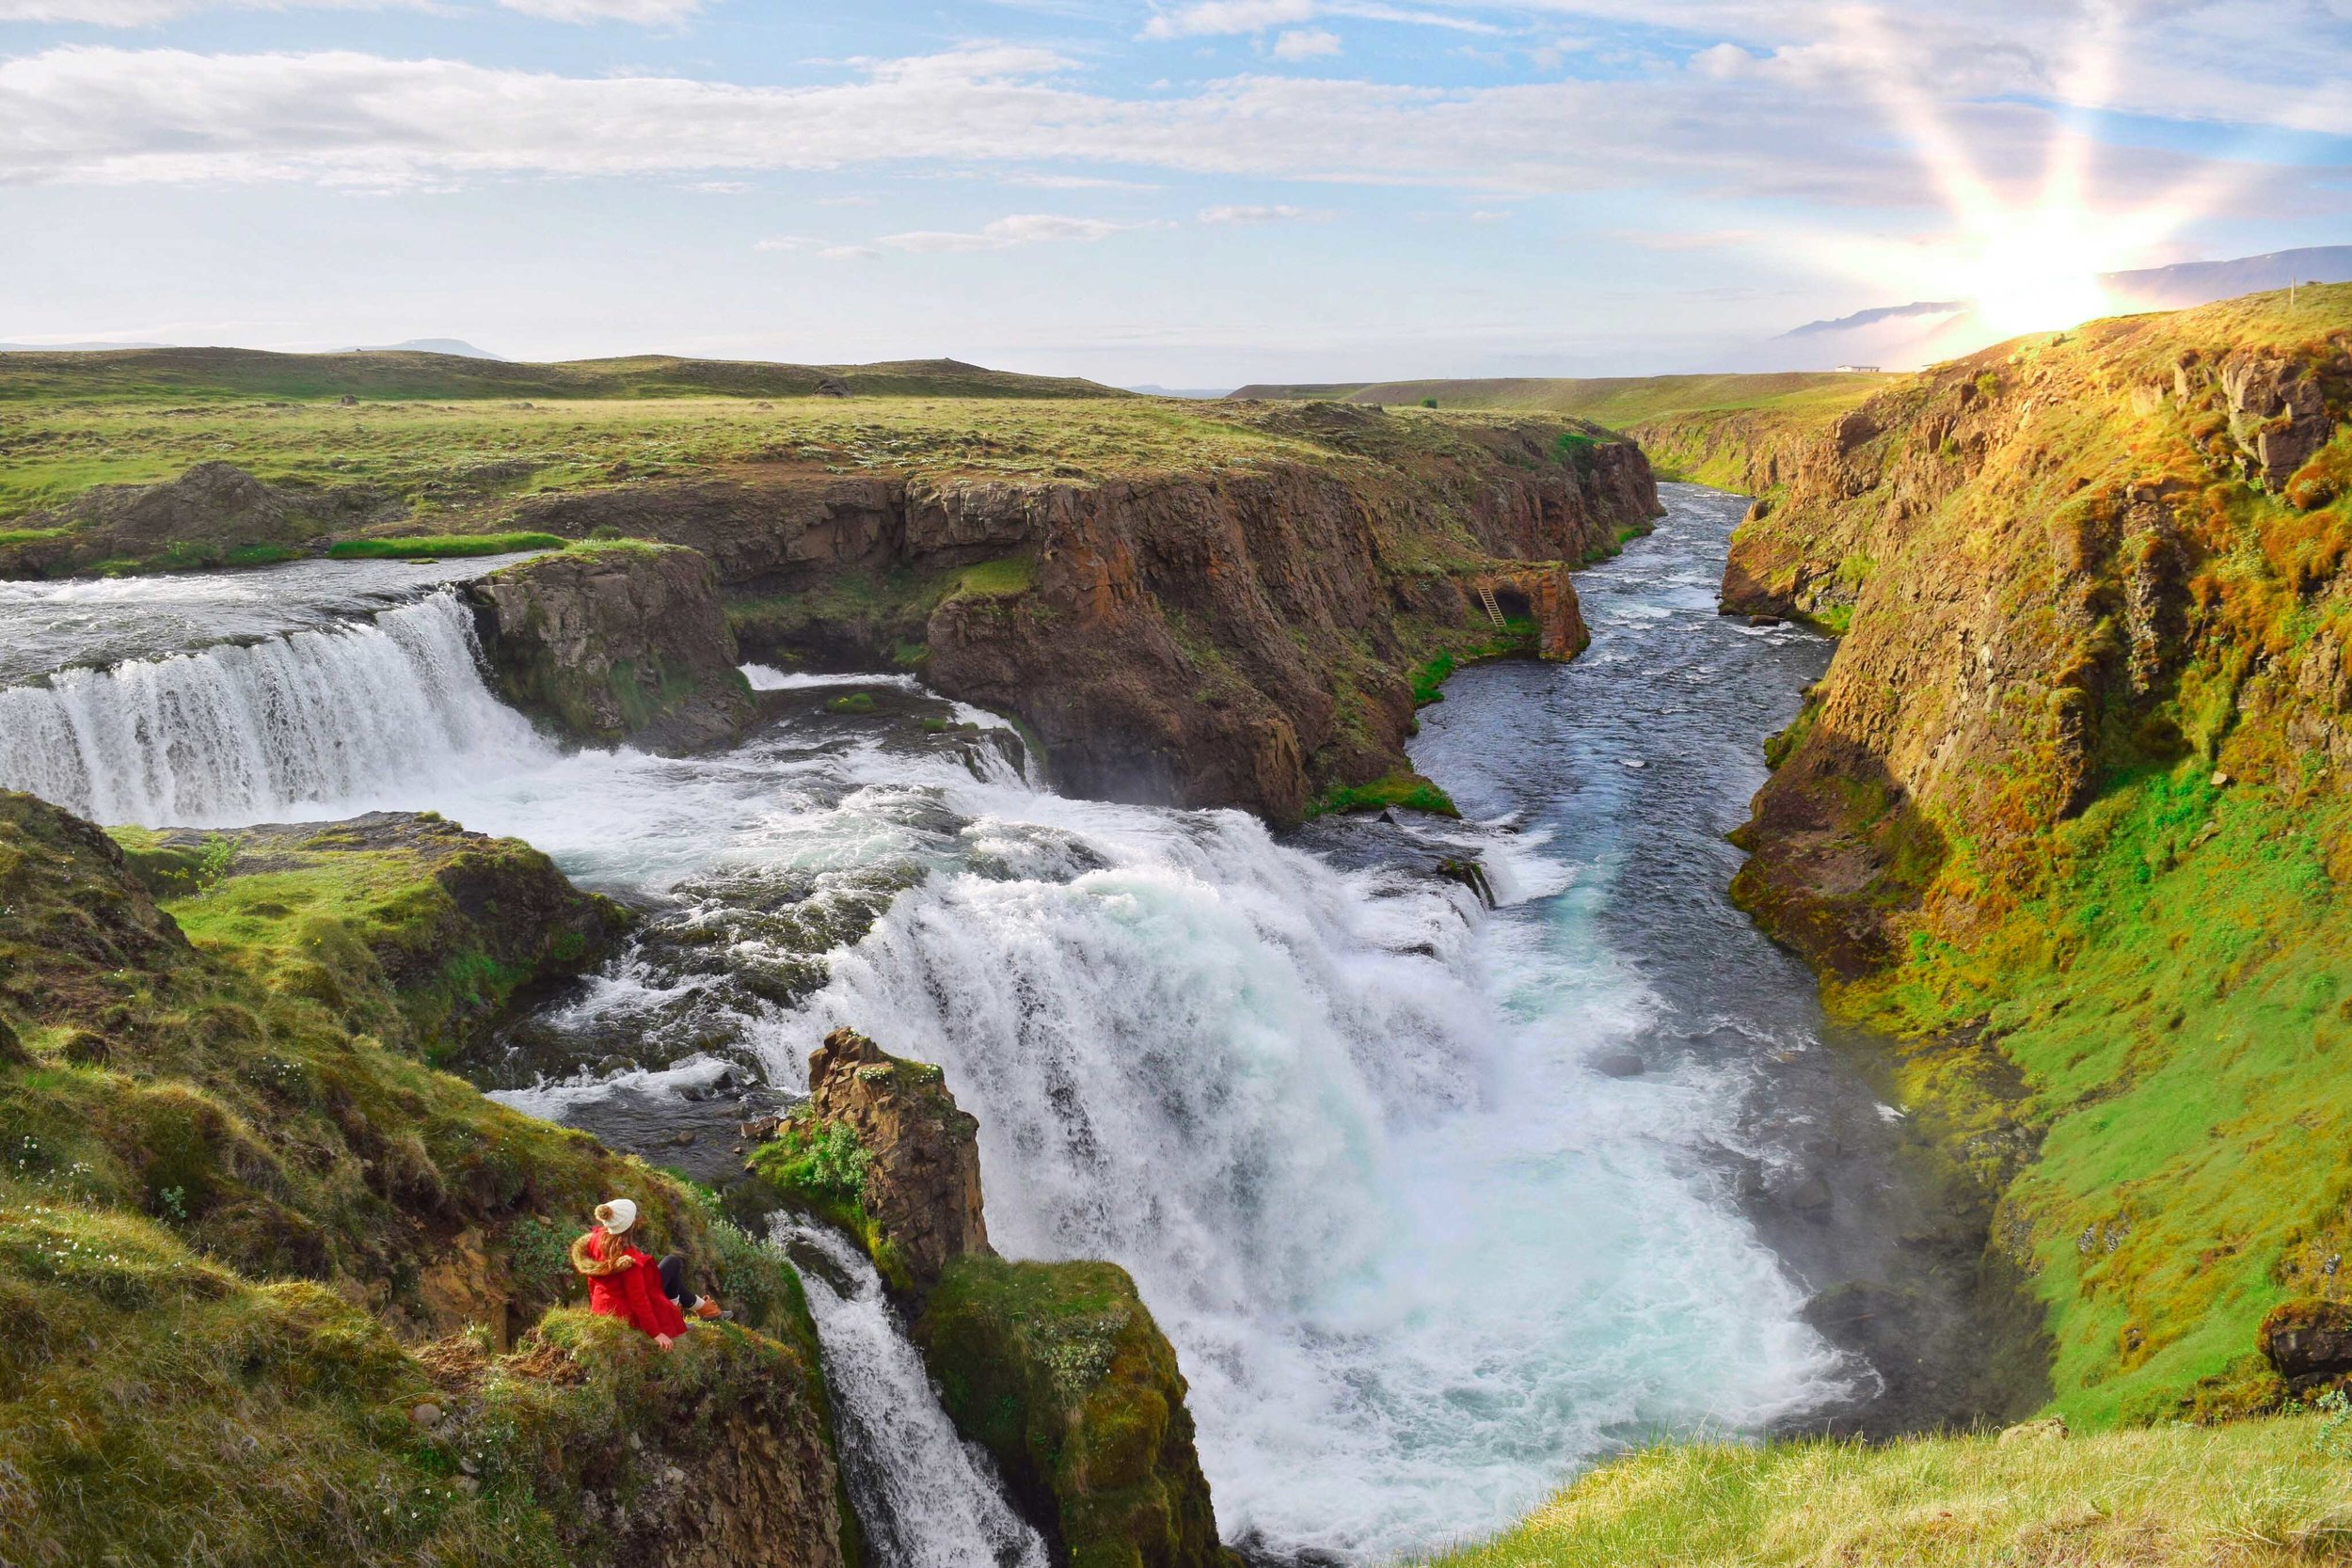 A serious gorgeous spot in Iceland.